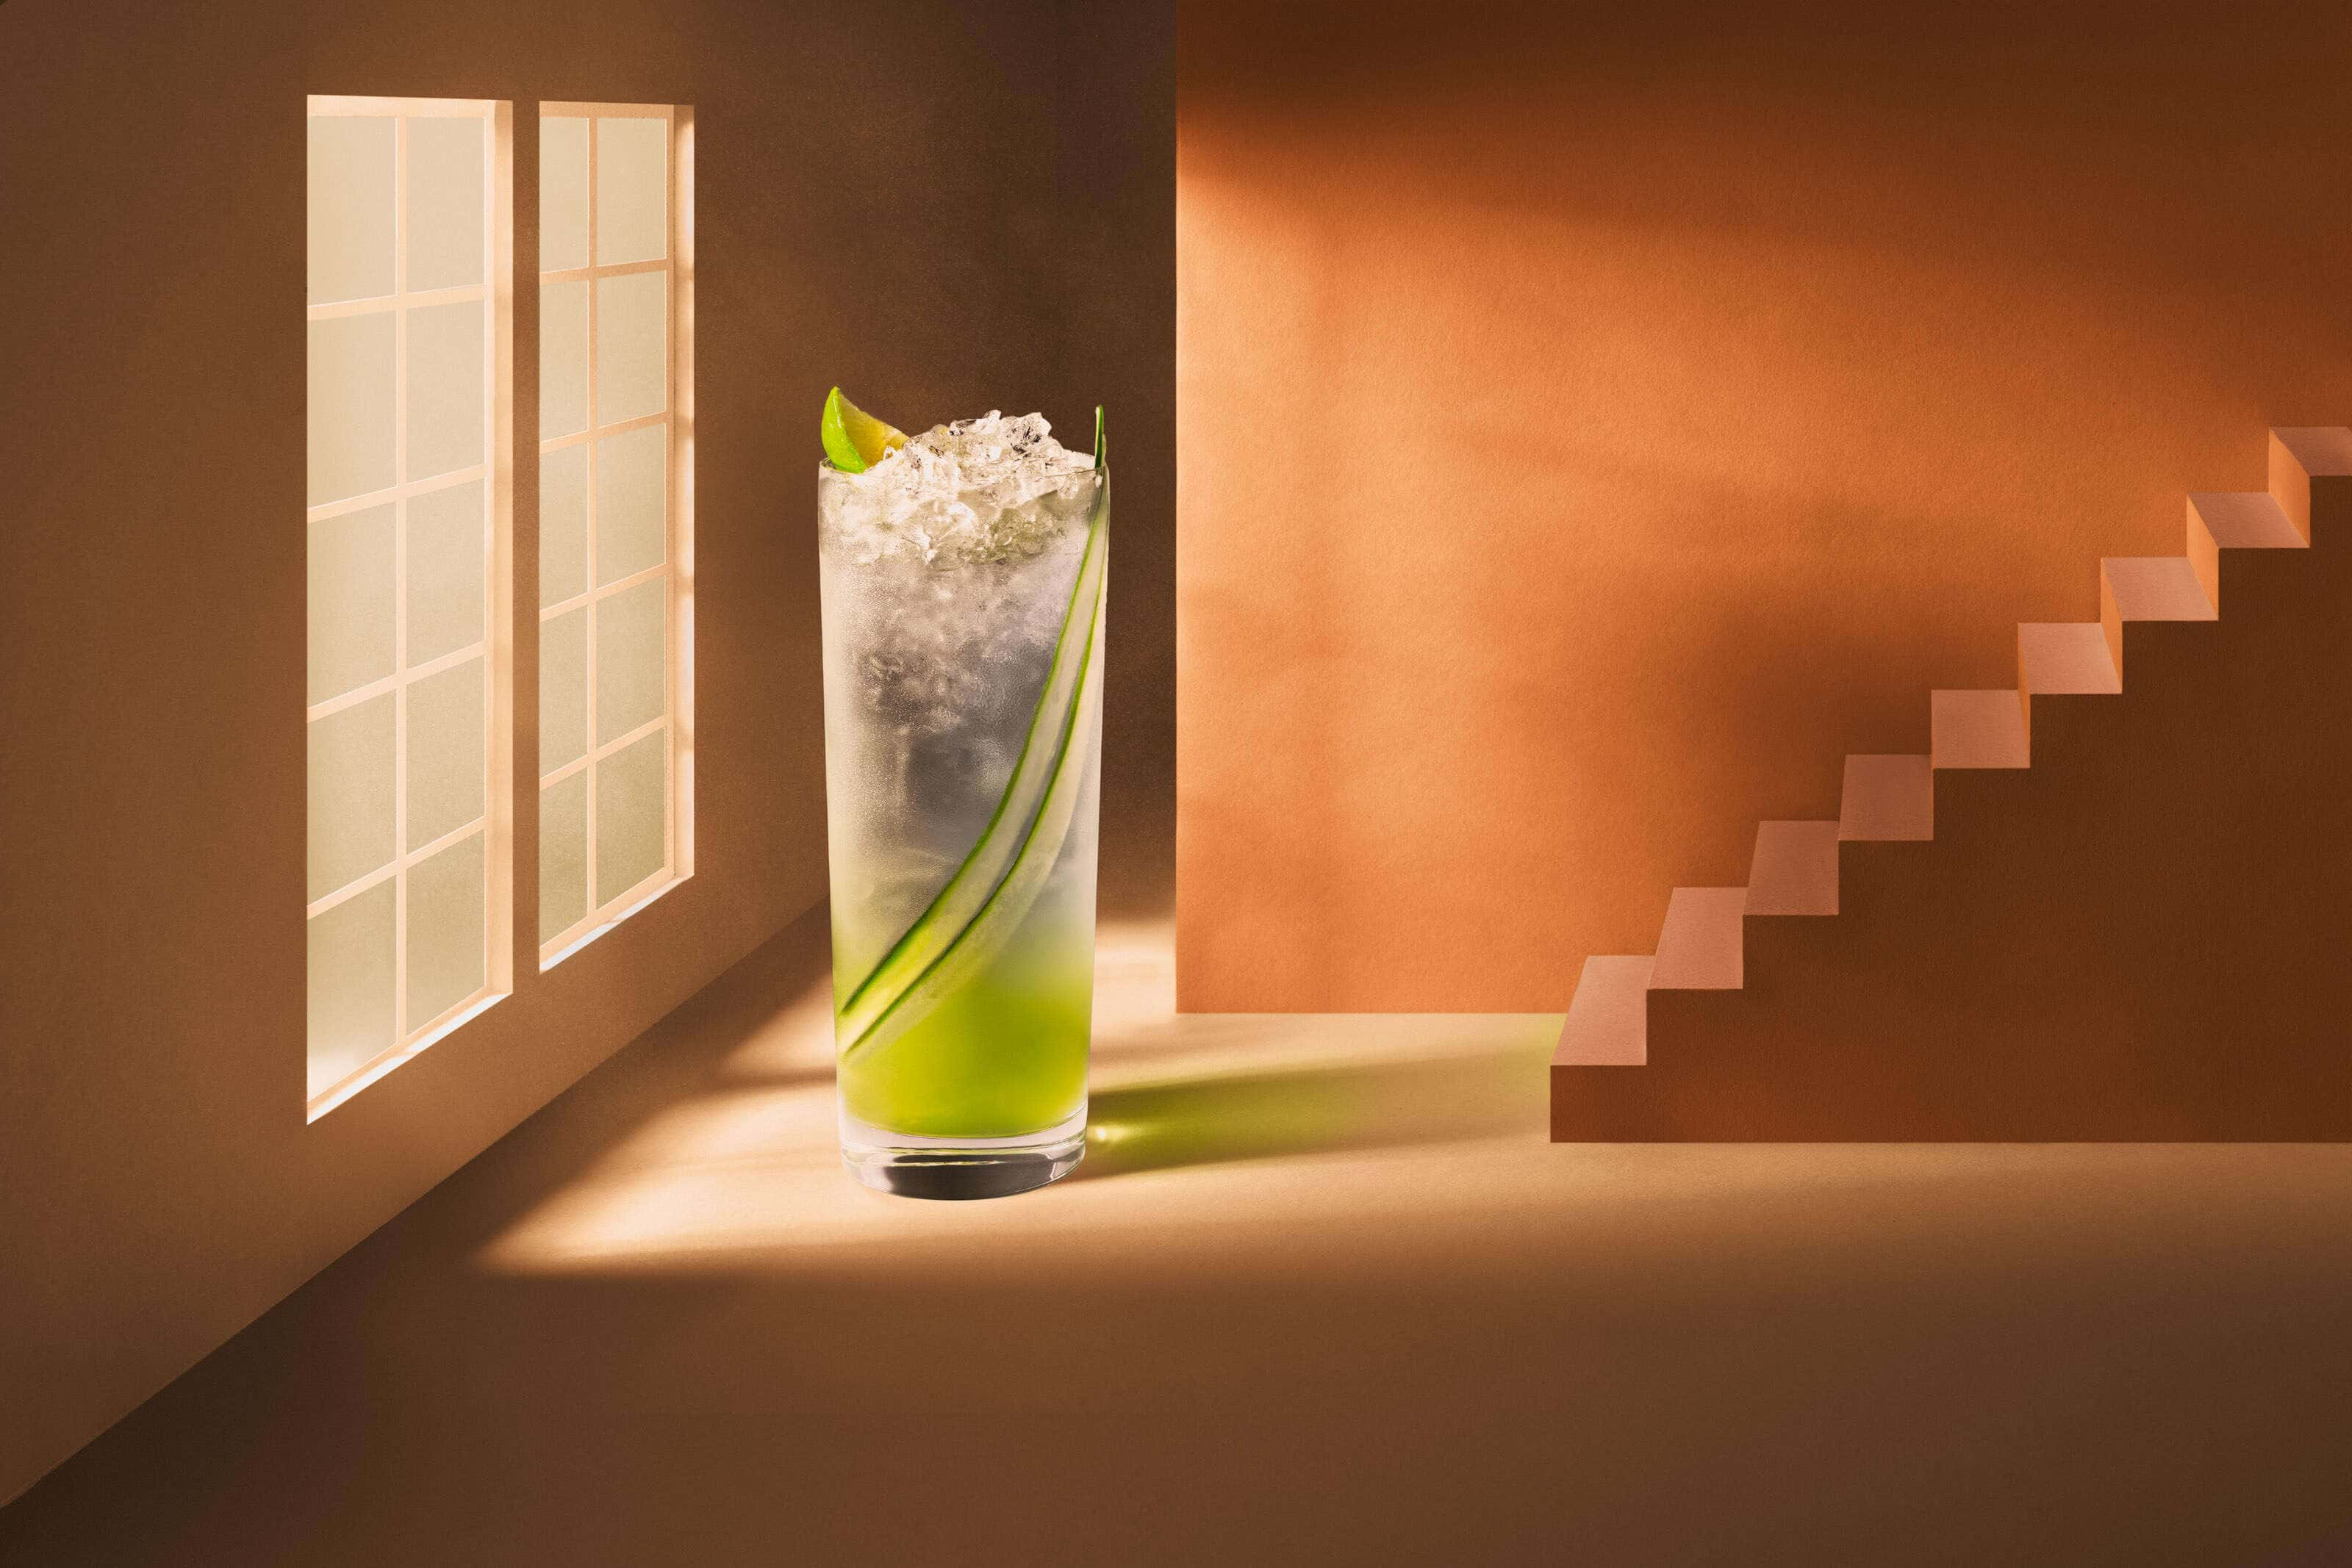 cucumber gin cocktail in set designed to look like a house